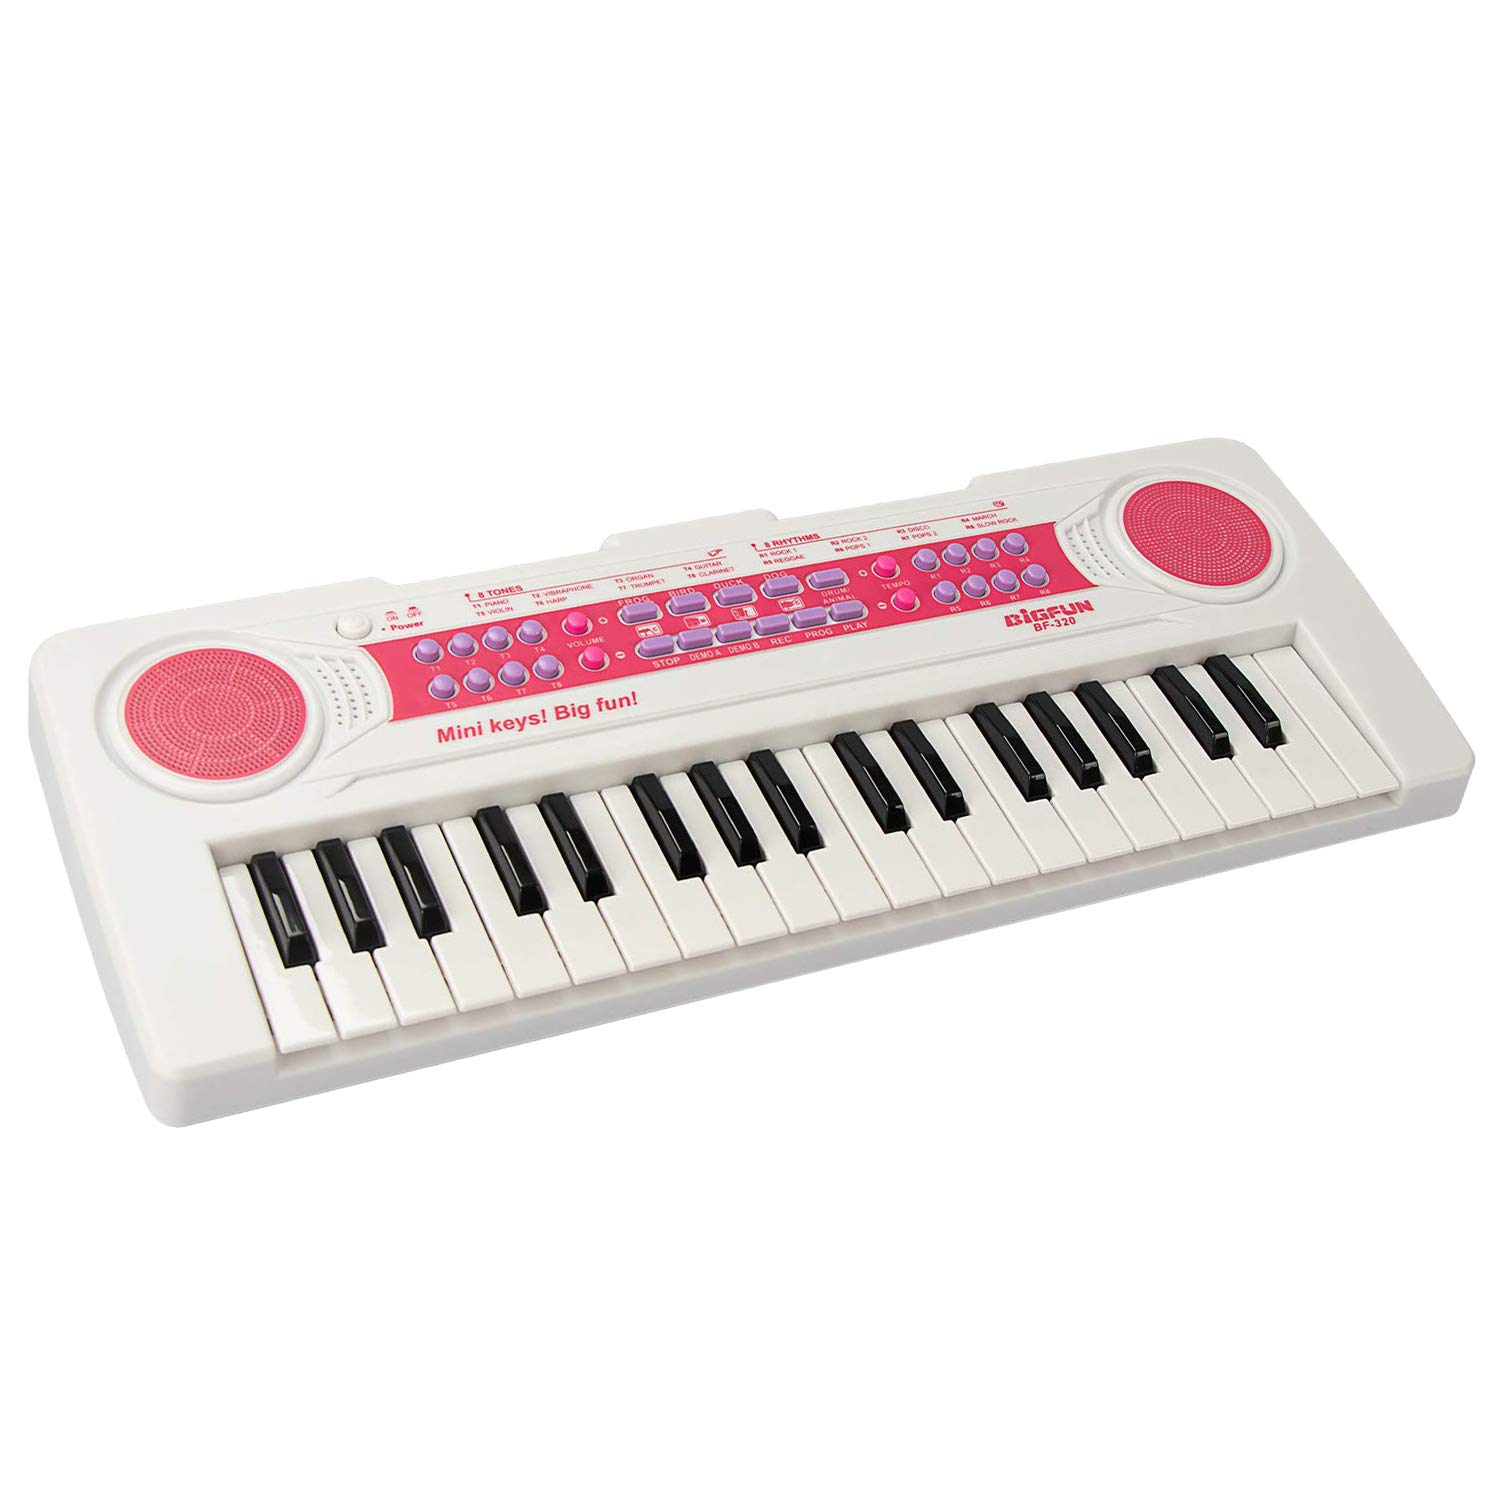 aPerfectLife 37 Keys Piano Keyboard for Kids Multifunction Portable Piano Electronic Keyboard Music Instrument for Kids Early Learning Educational Toy (White)